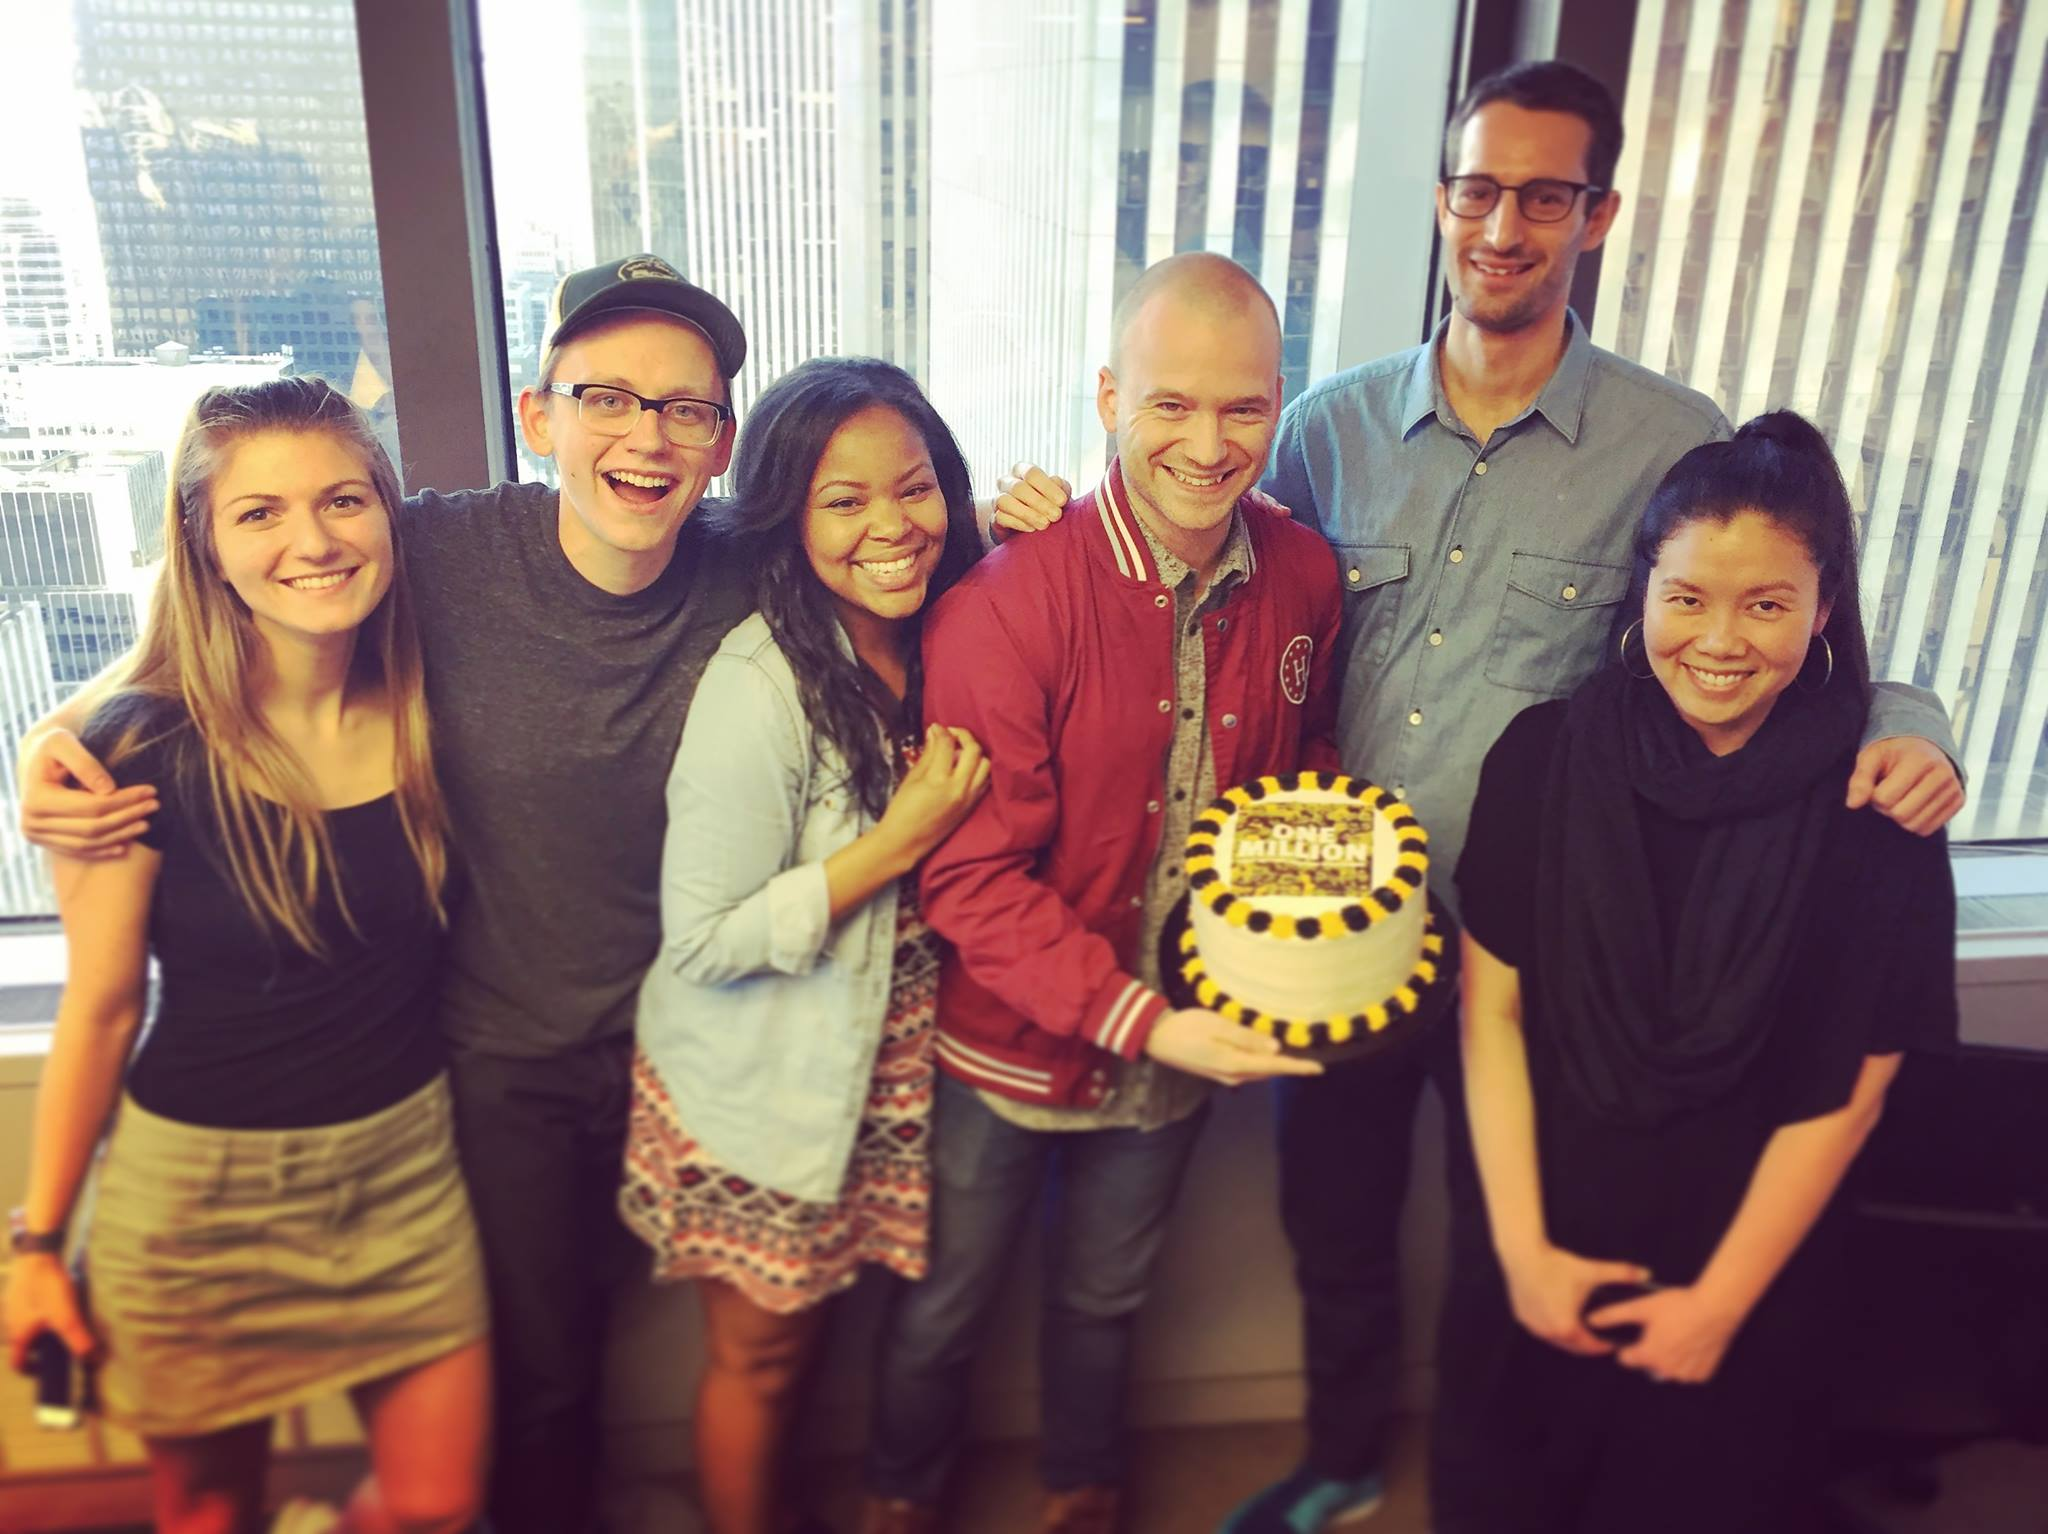 The Hot Ones team celebrating First We Feast's first one million Youtube subscribers.